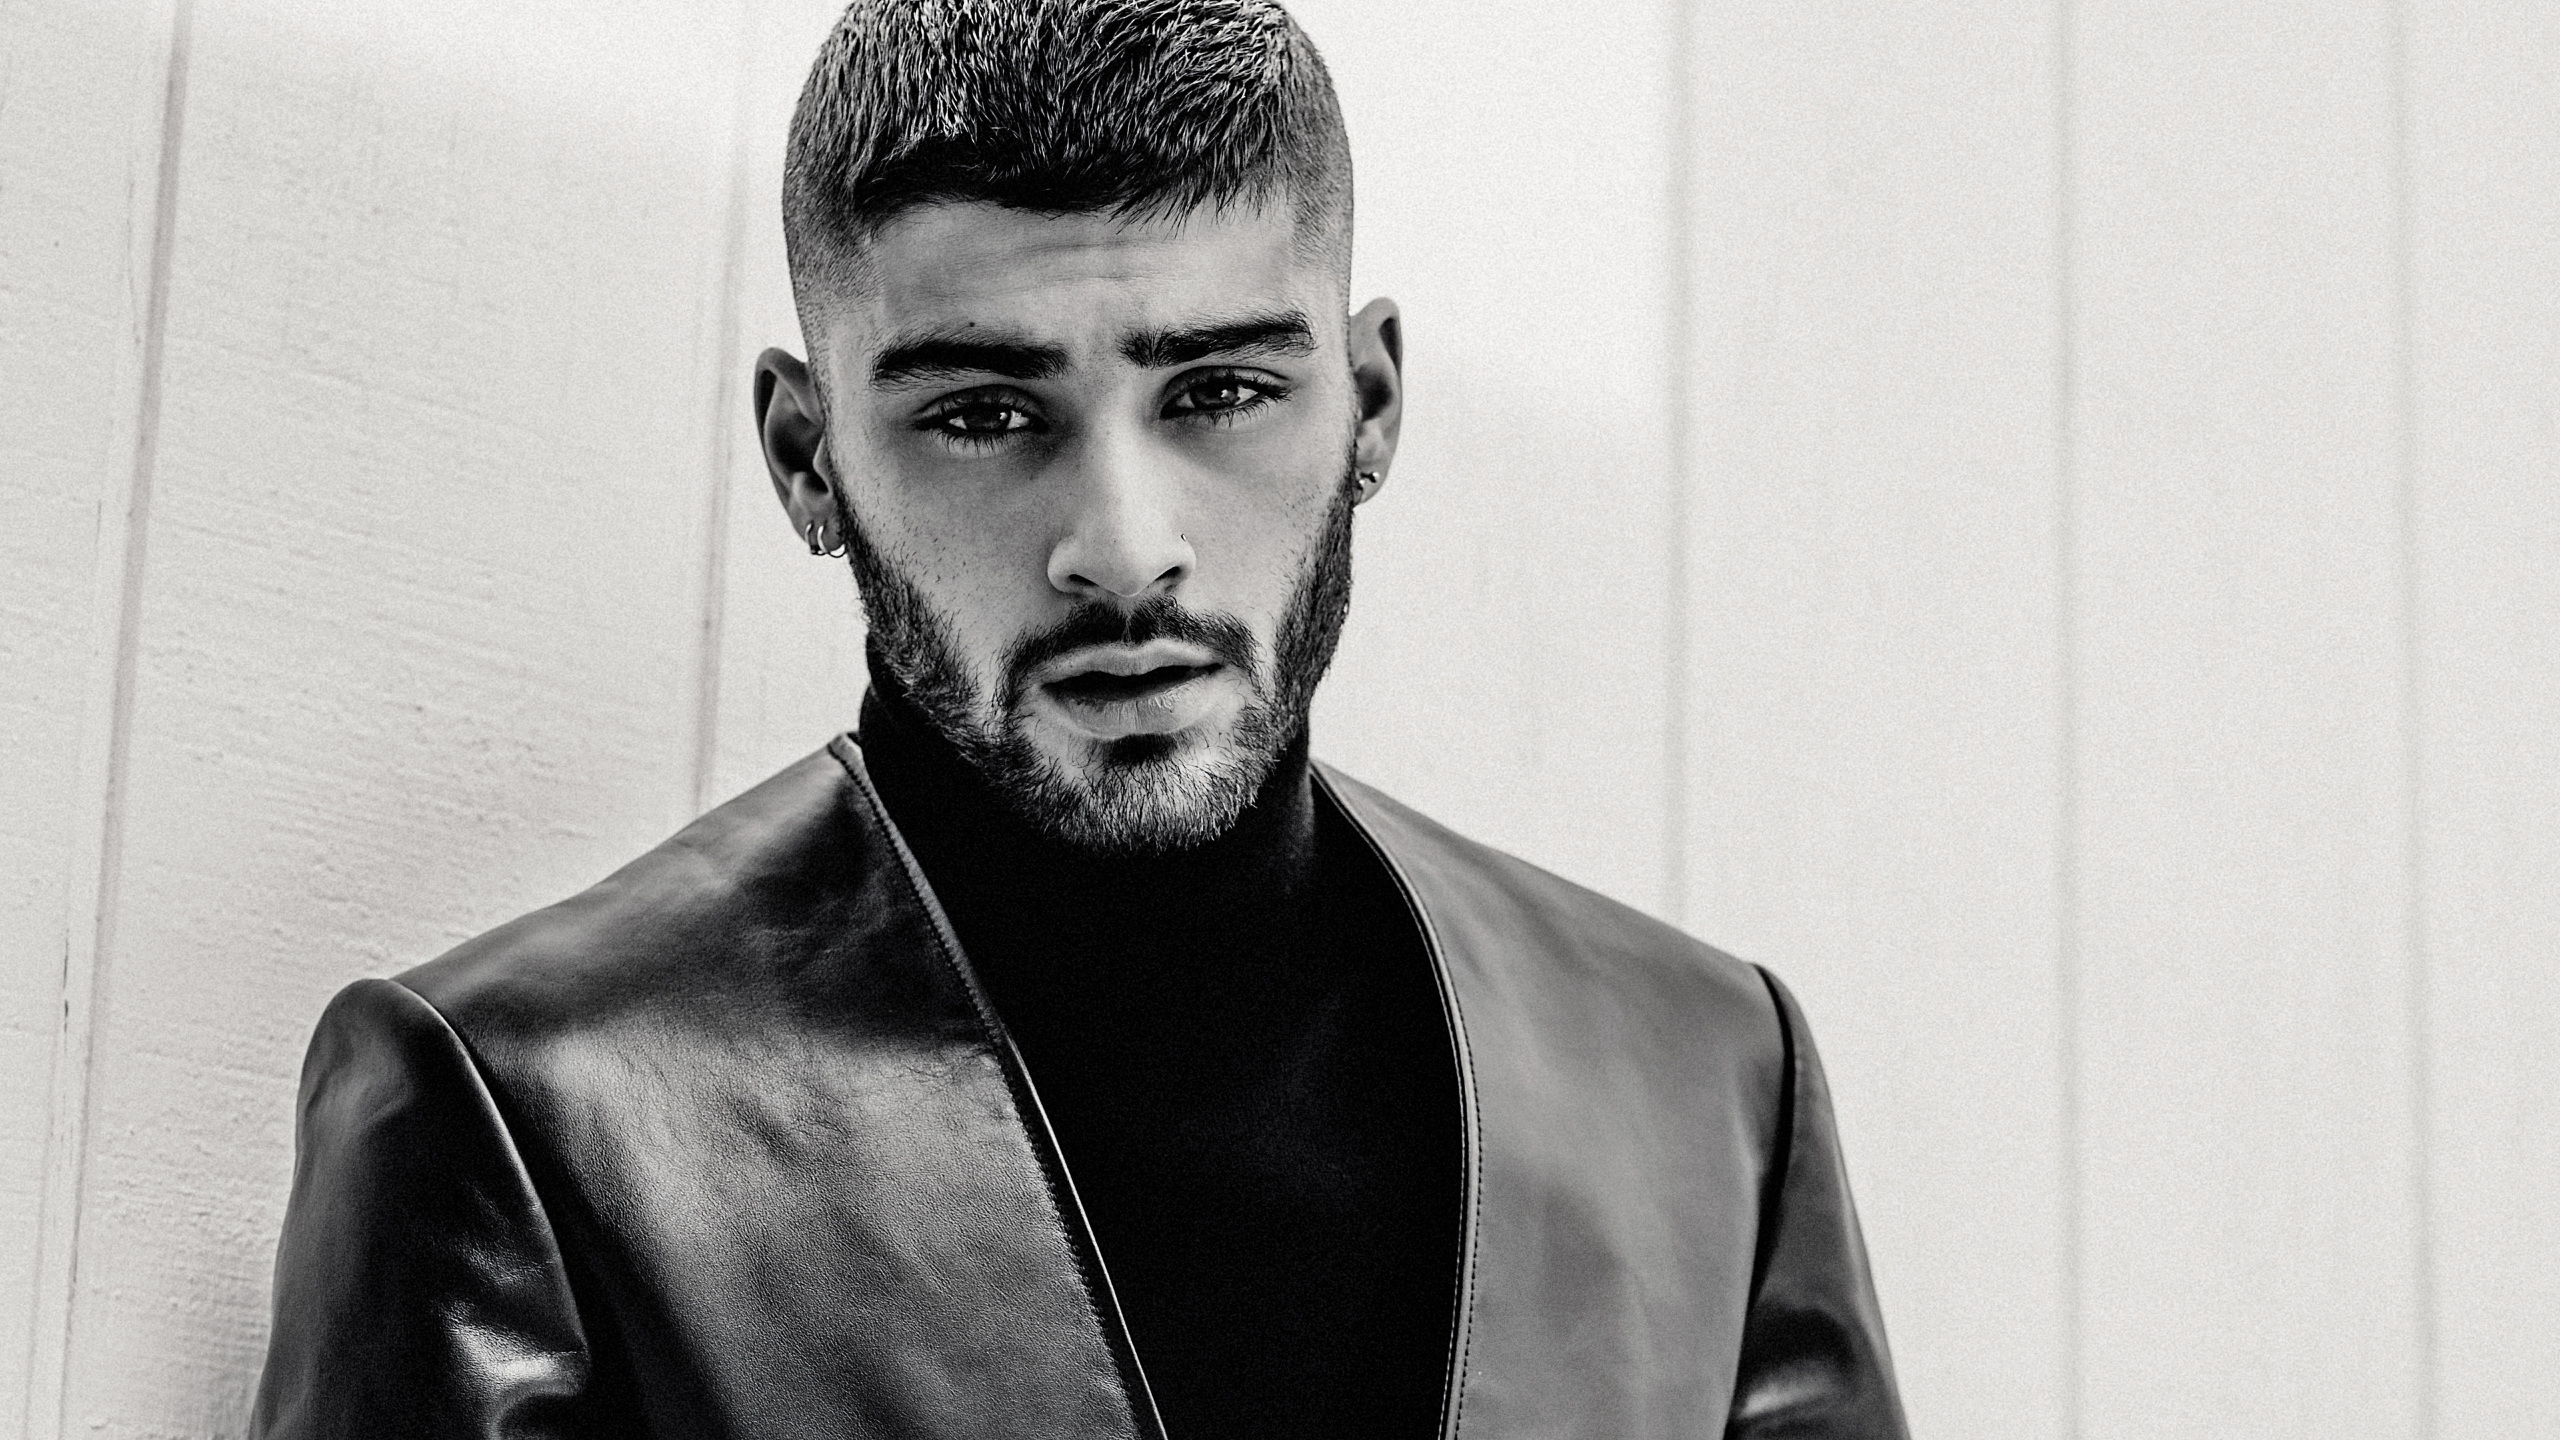 Download Zayn Malik 2018 Monochrome 2560x1440 Resolution